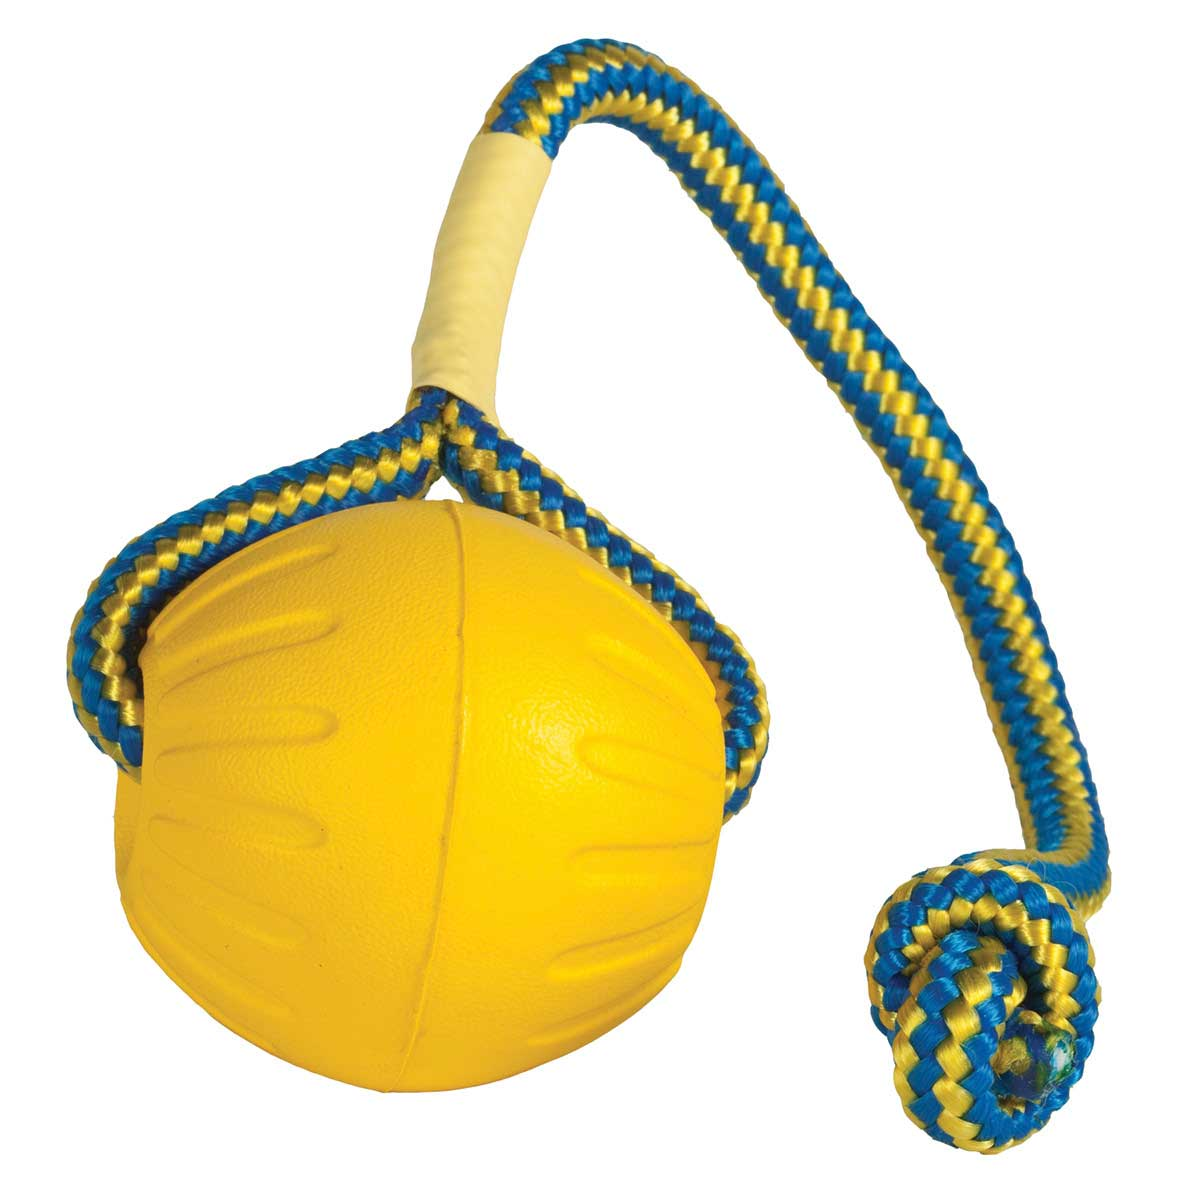 Starmark Swing & Fling DuraFoam Medium Fetch Ball